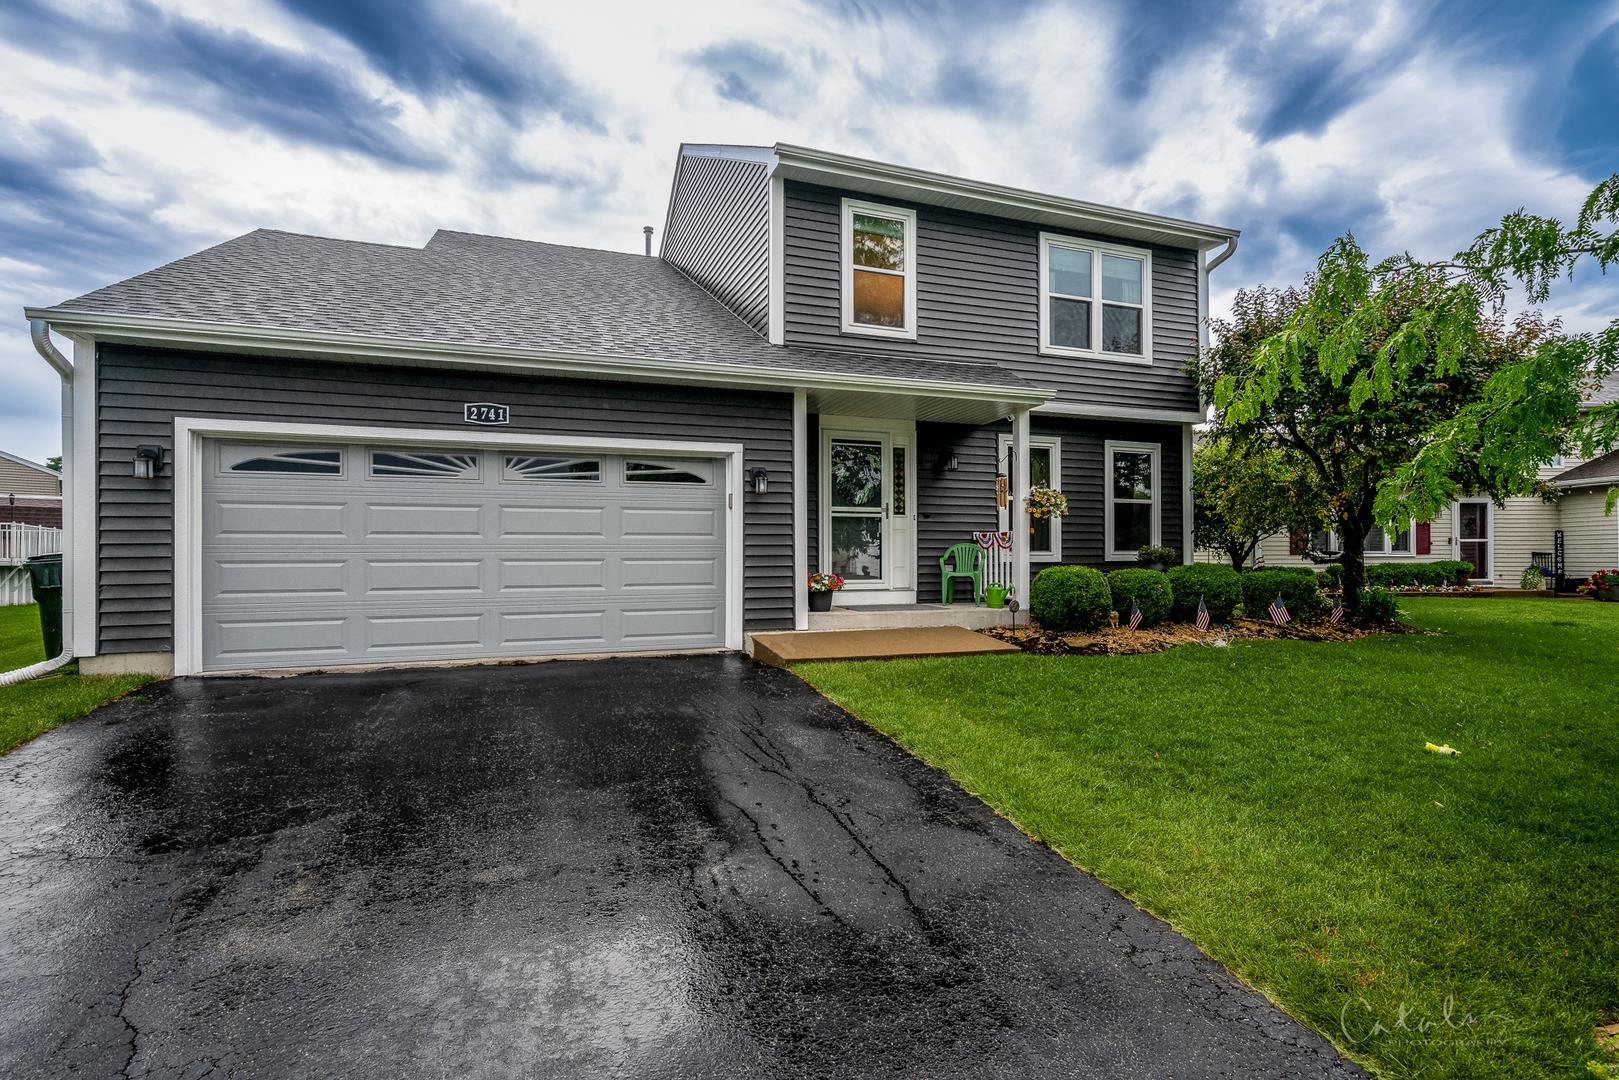 2741 Briarcliff Lane, Lake in the Hills, IL 60156 - #: 10762016